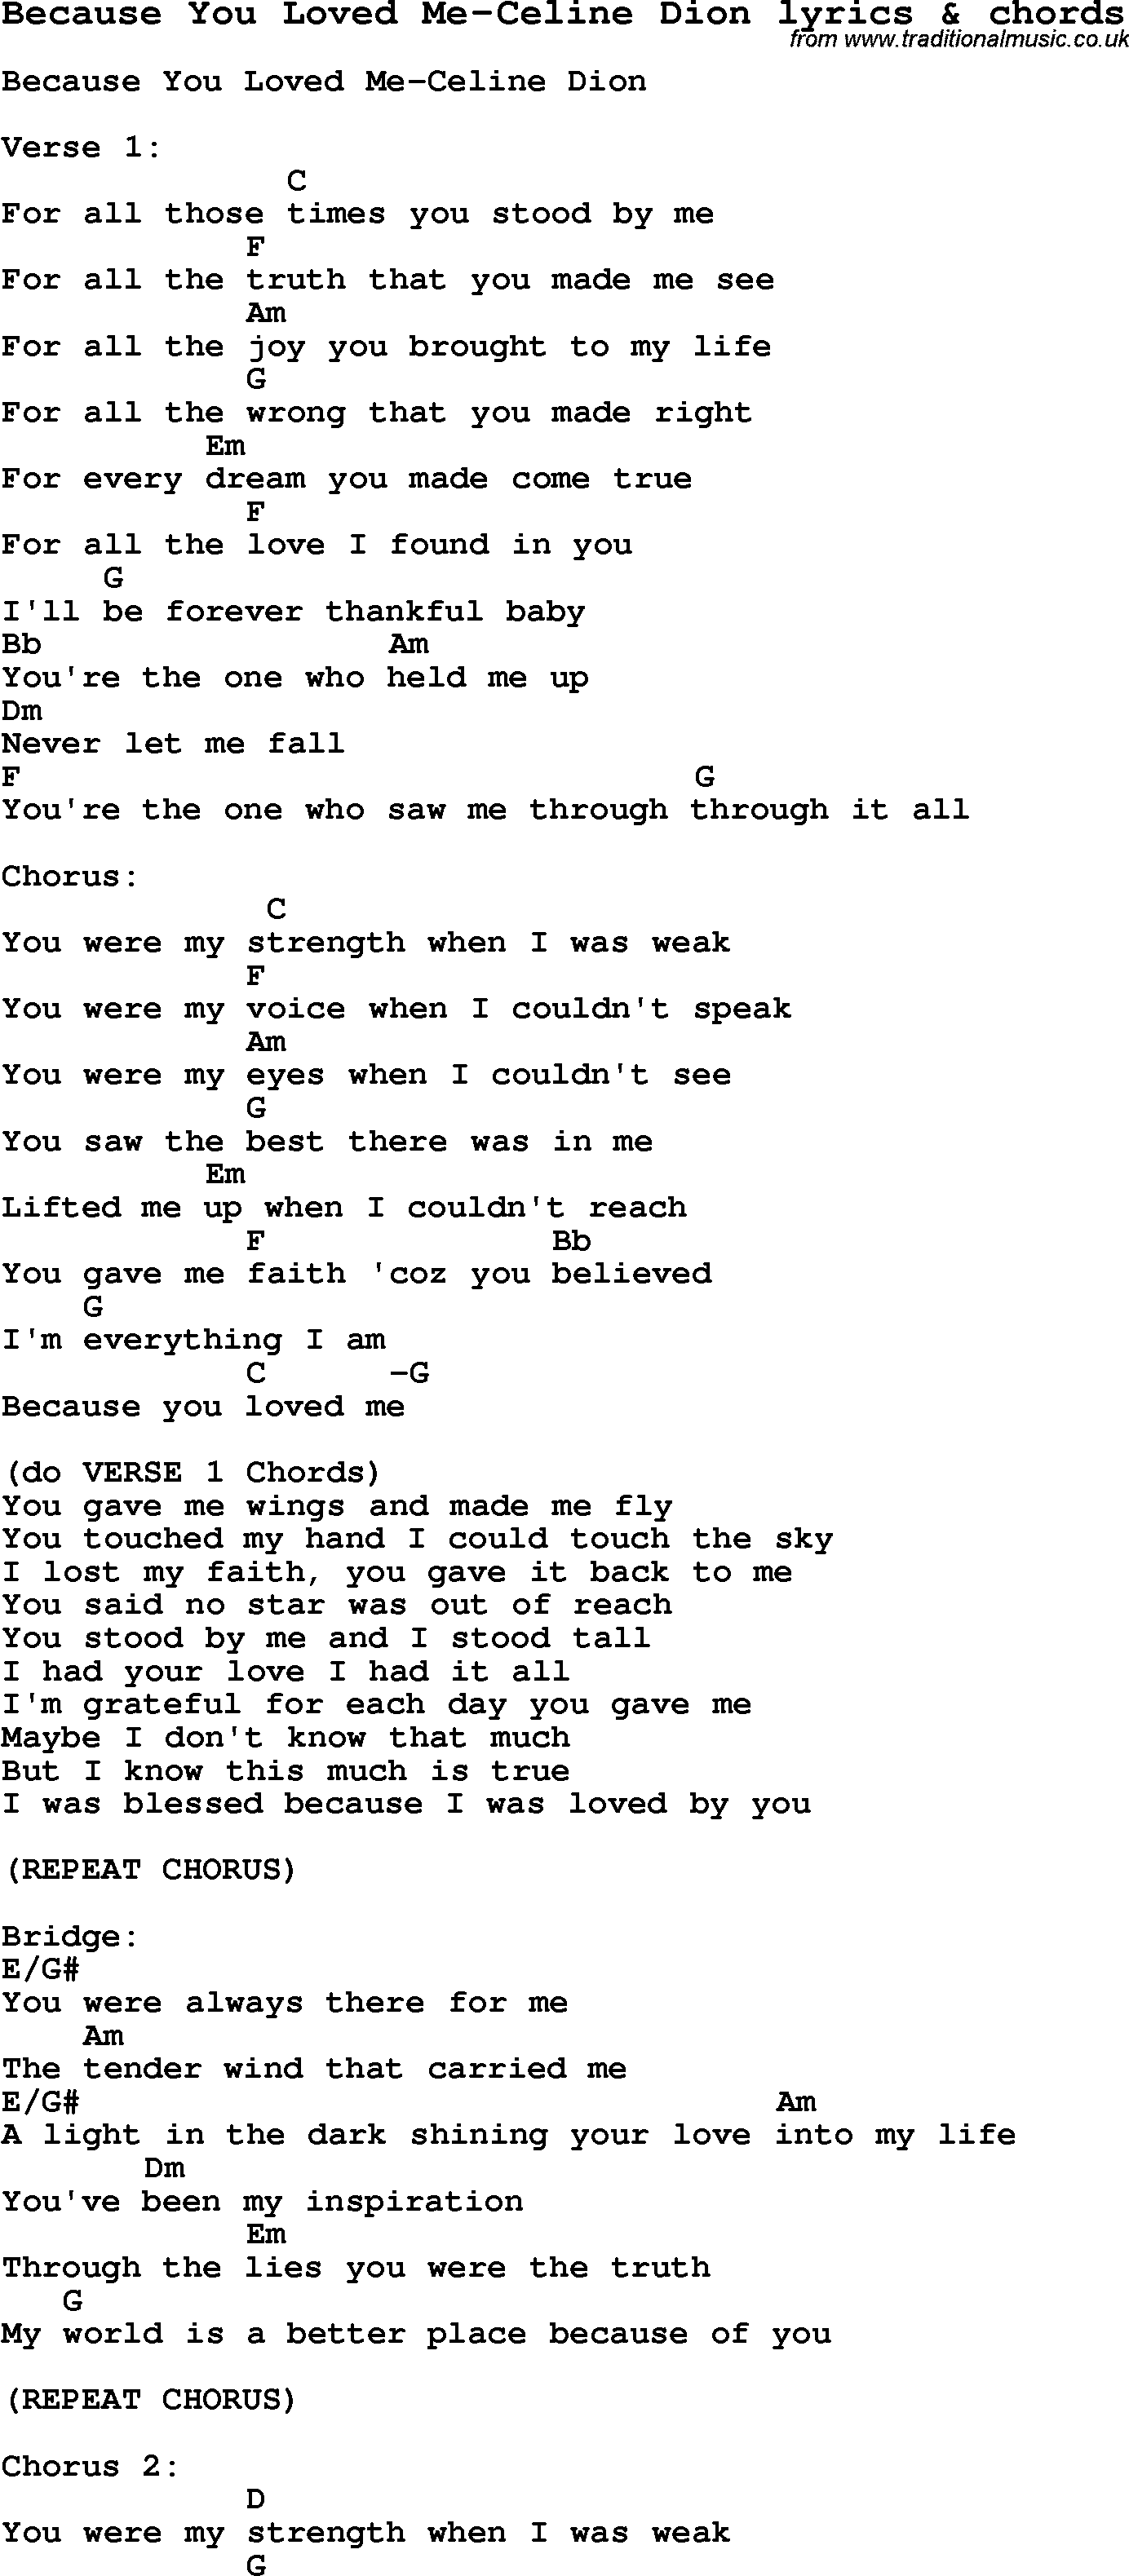 Love song lyrics forbecause you loved me celine dion with chords love song lyrics for because you loved me celine dion with chords for ukulele hexwebz Choice Image